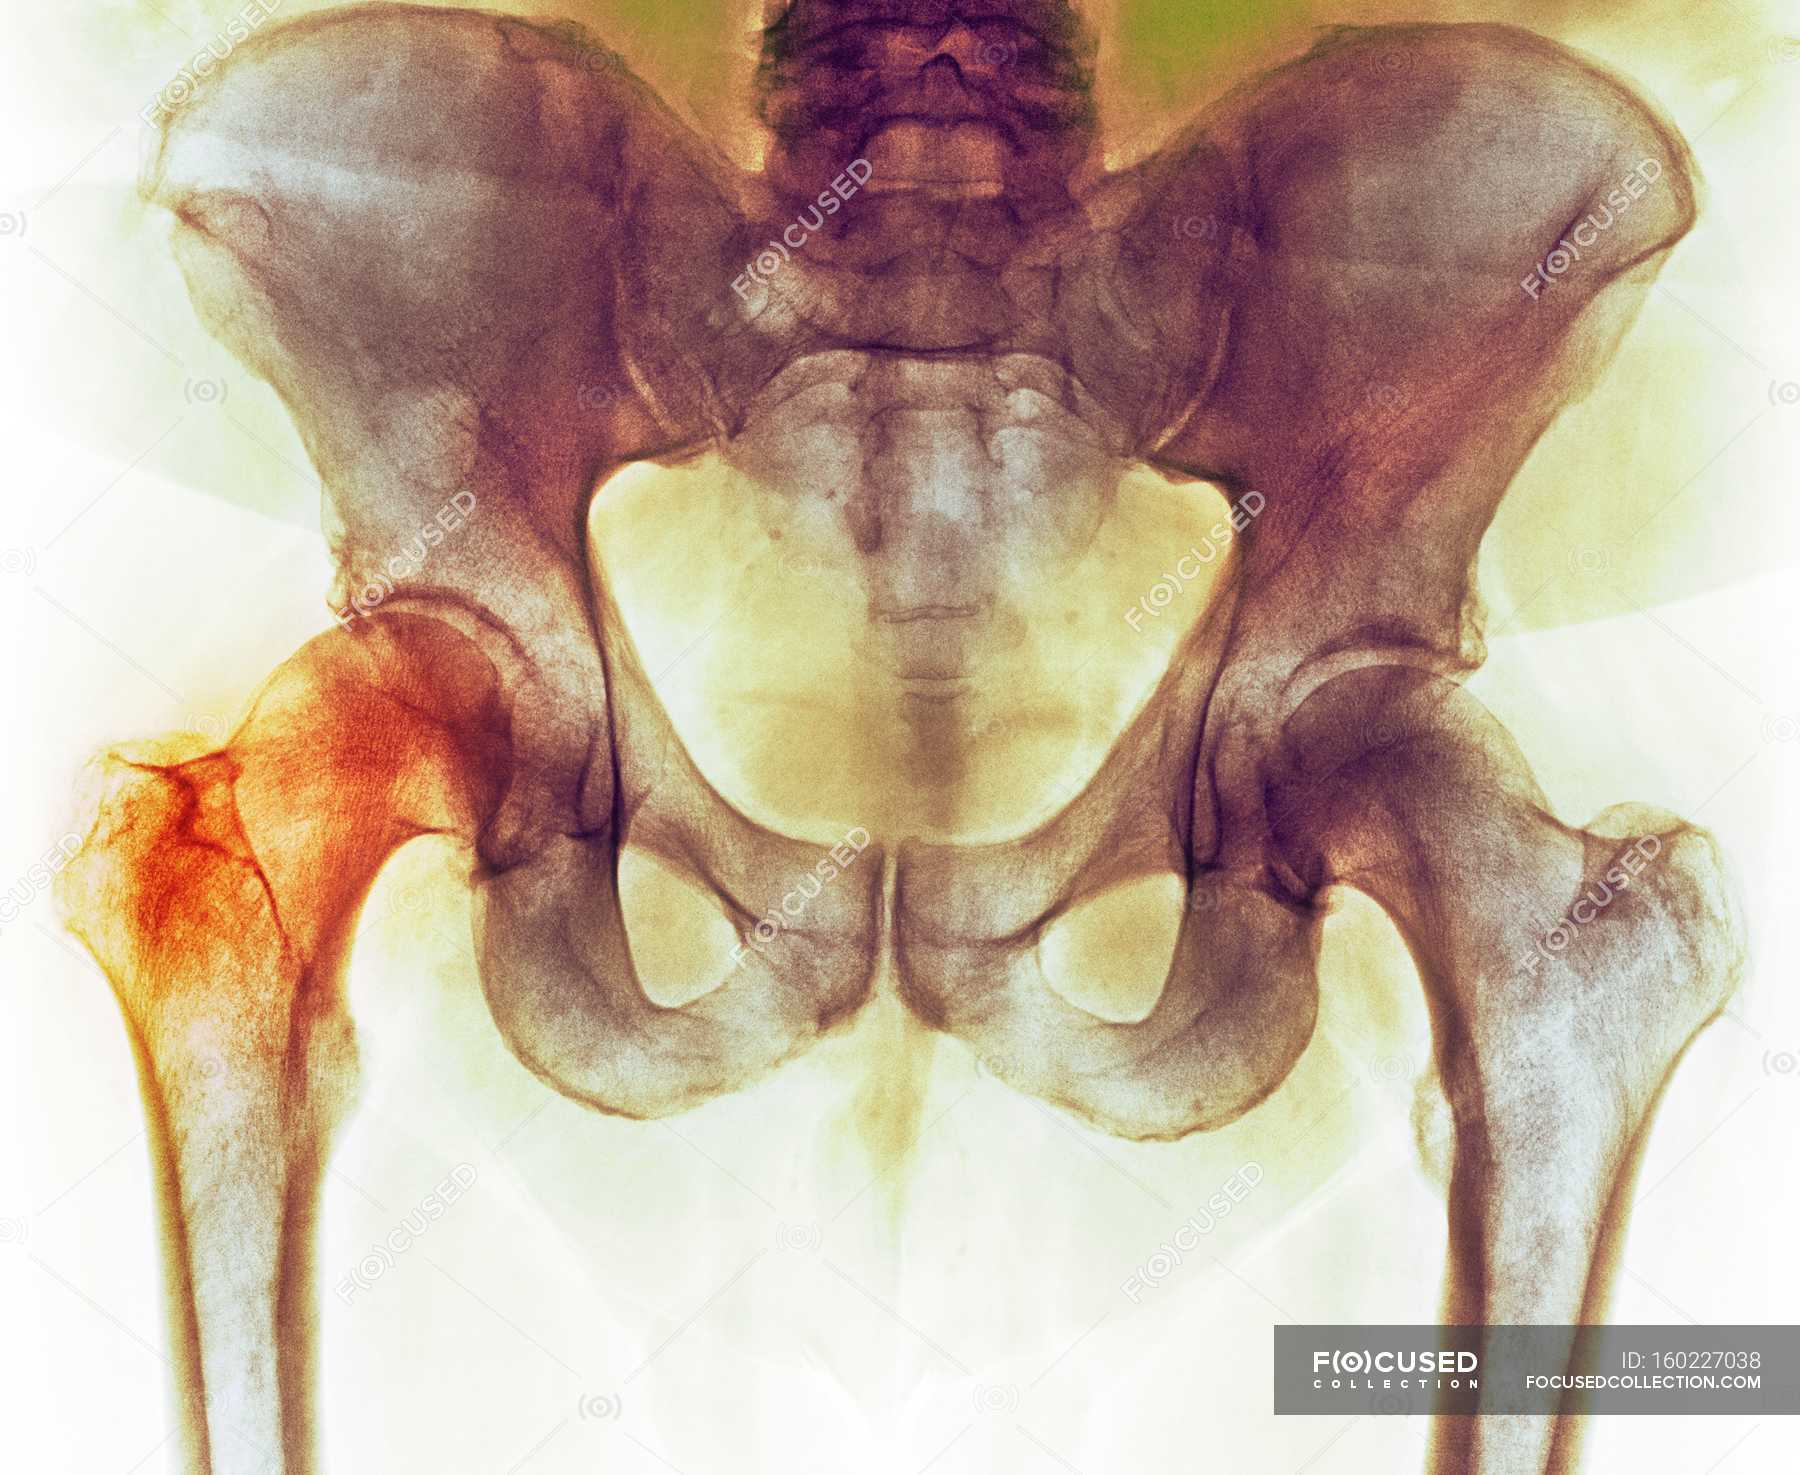 Hip before hip replacement surgery, X-ray — Stock Photo | #160227038